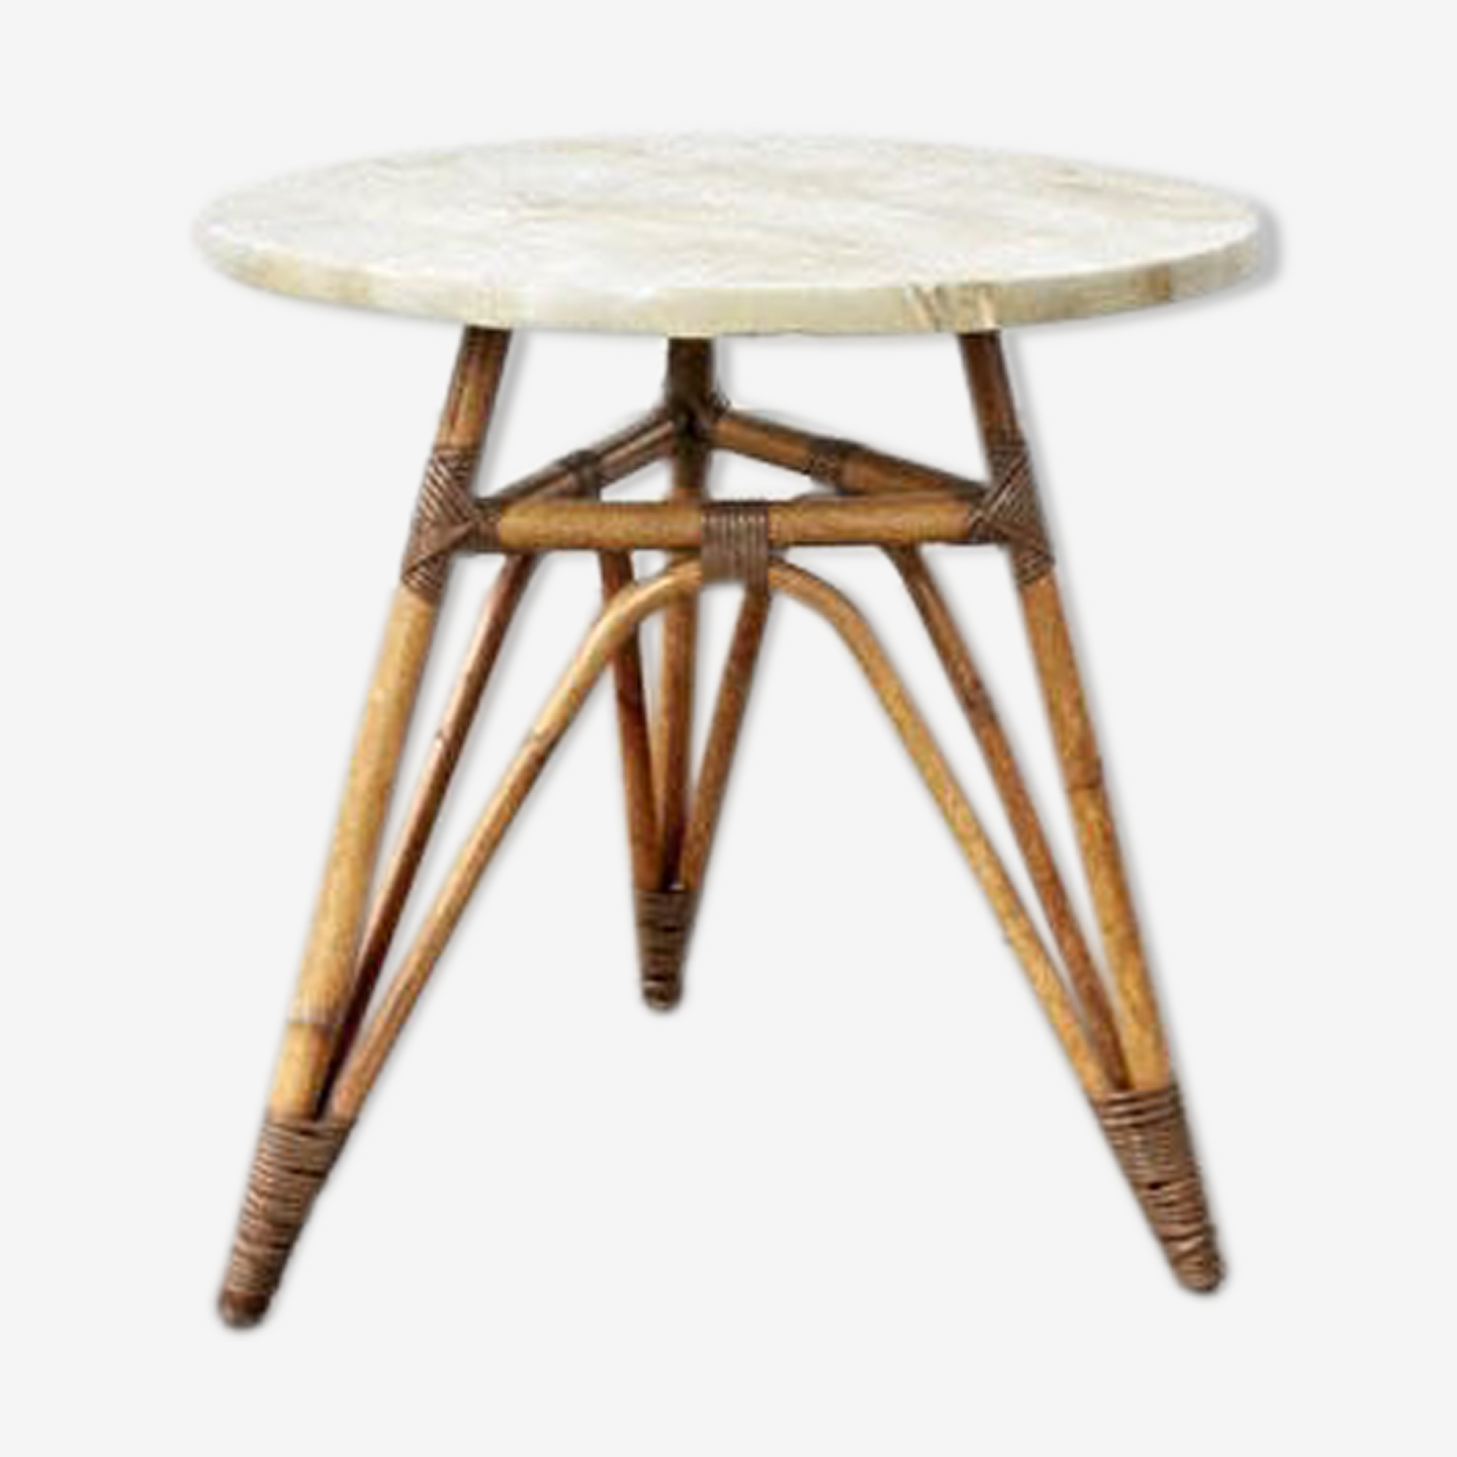 Marble and rattan table